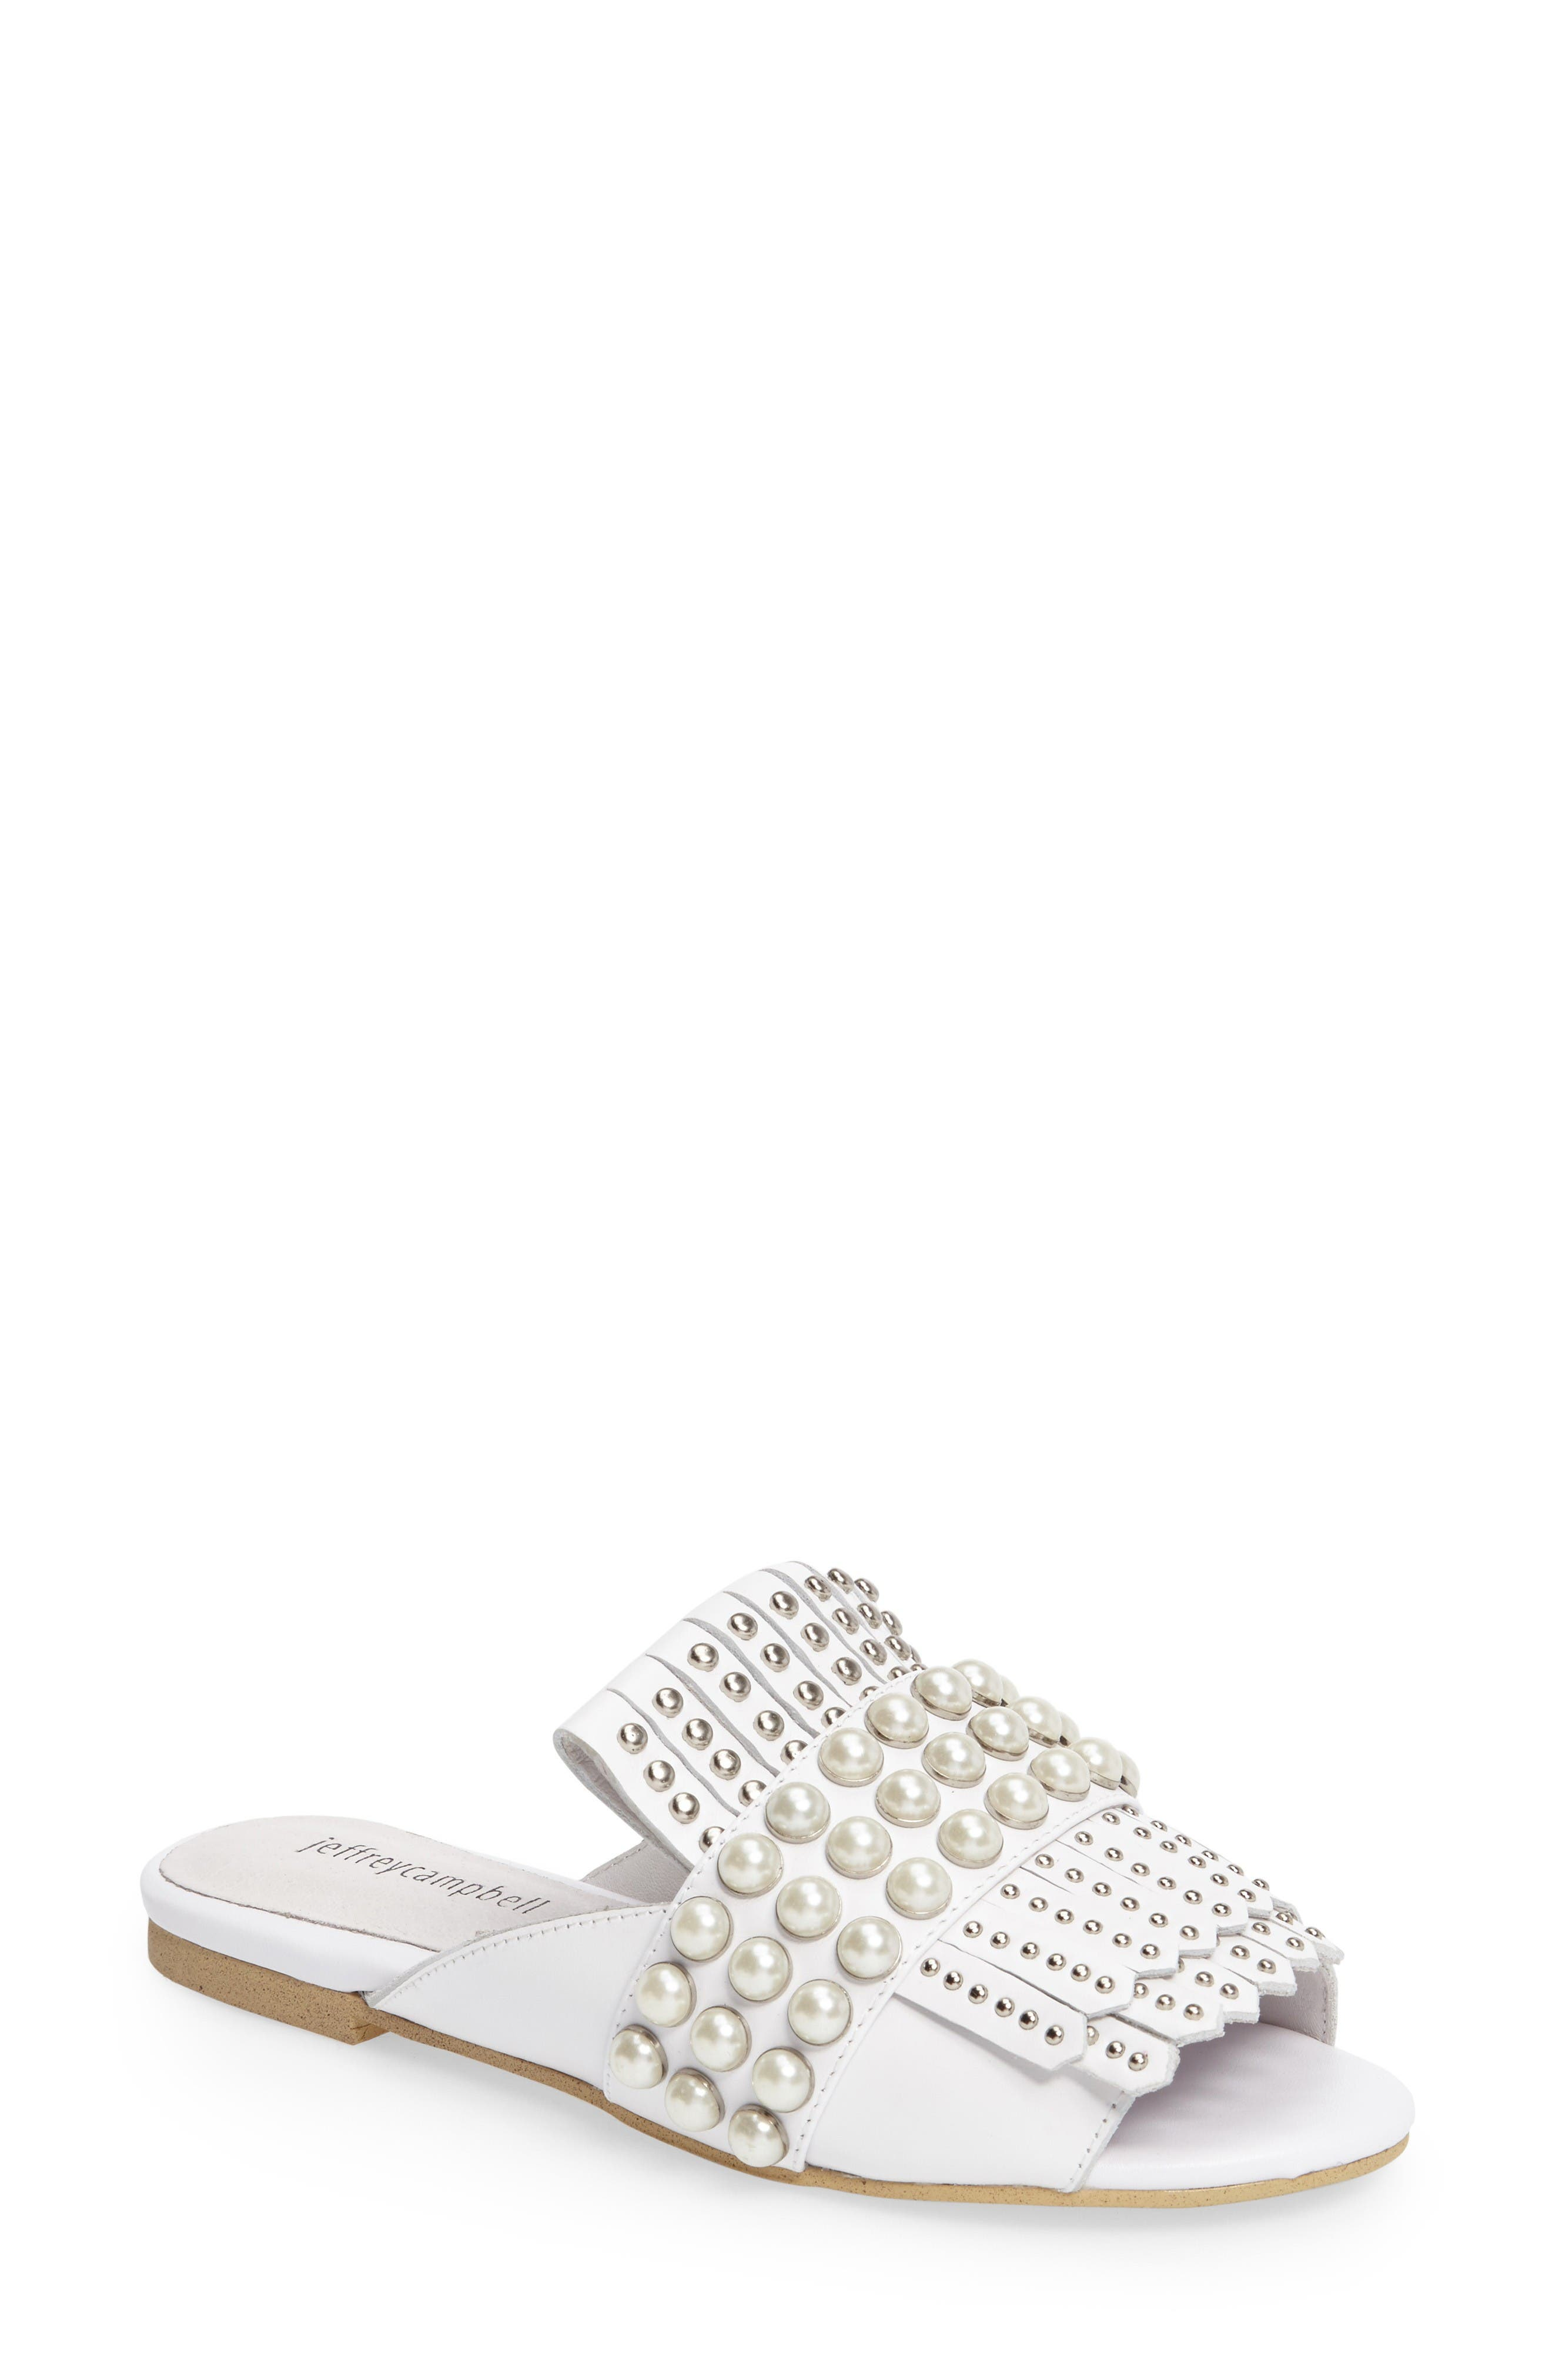 Alternate Image 1 Selected - Jeffrey Campbell Talley Embellished Loafer Mule (Women)